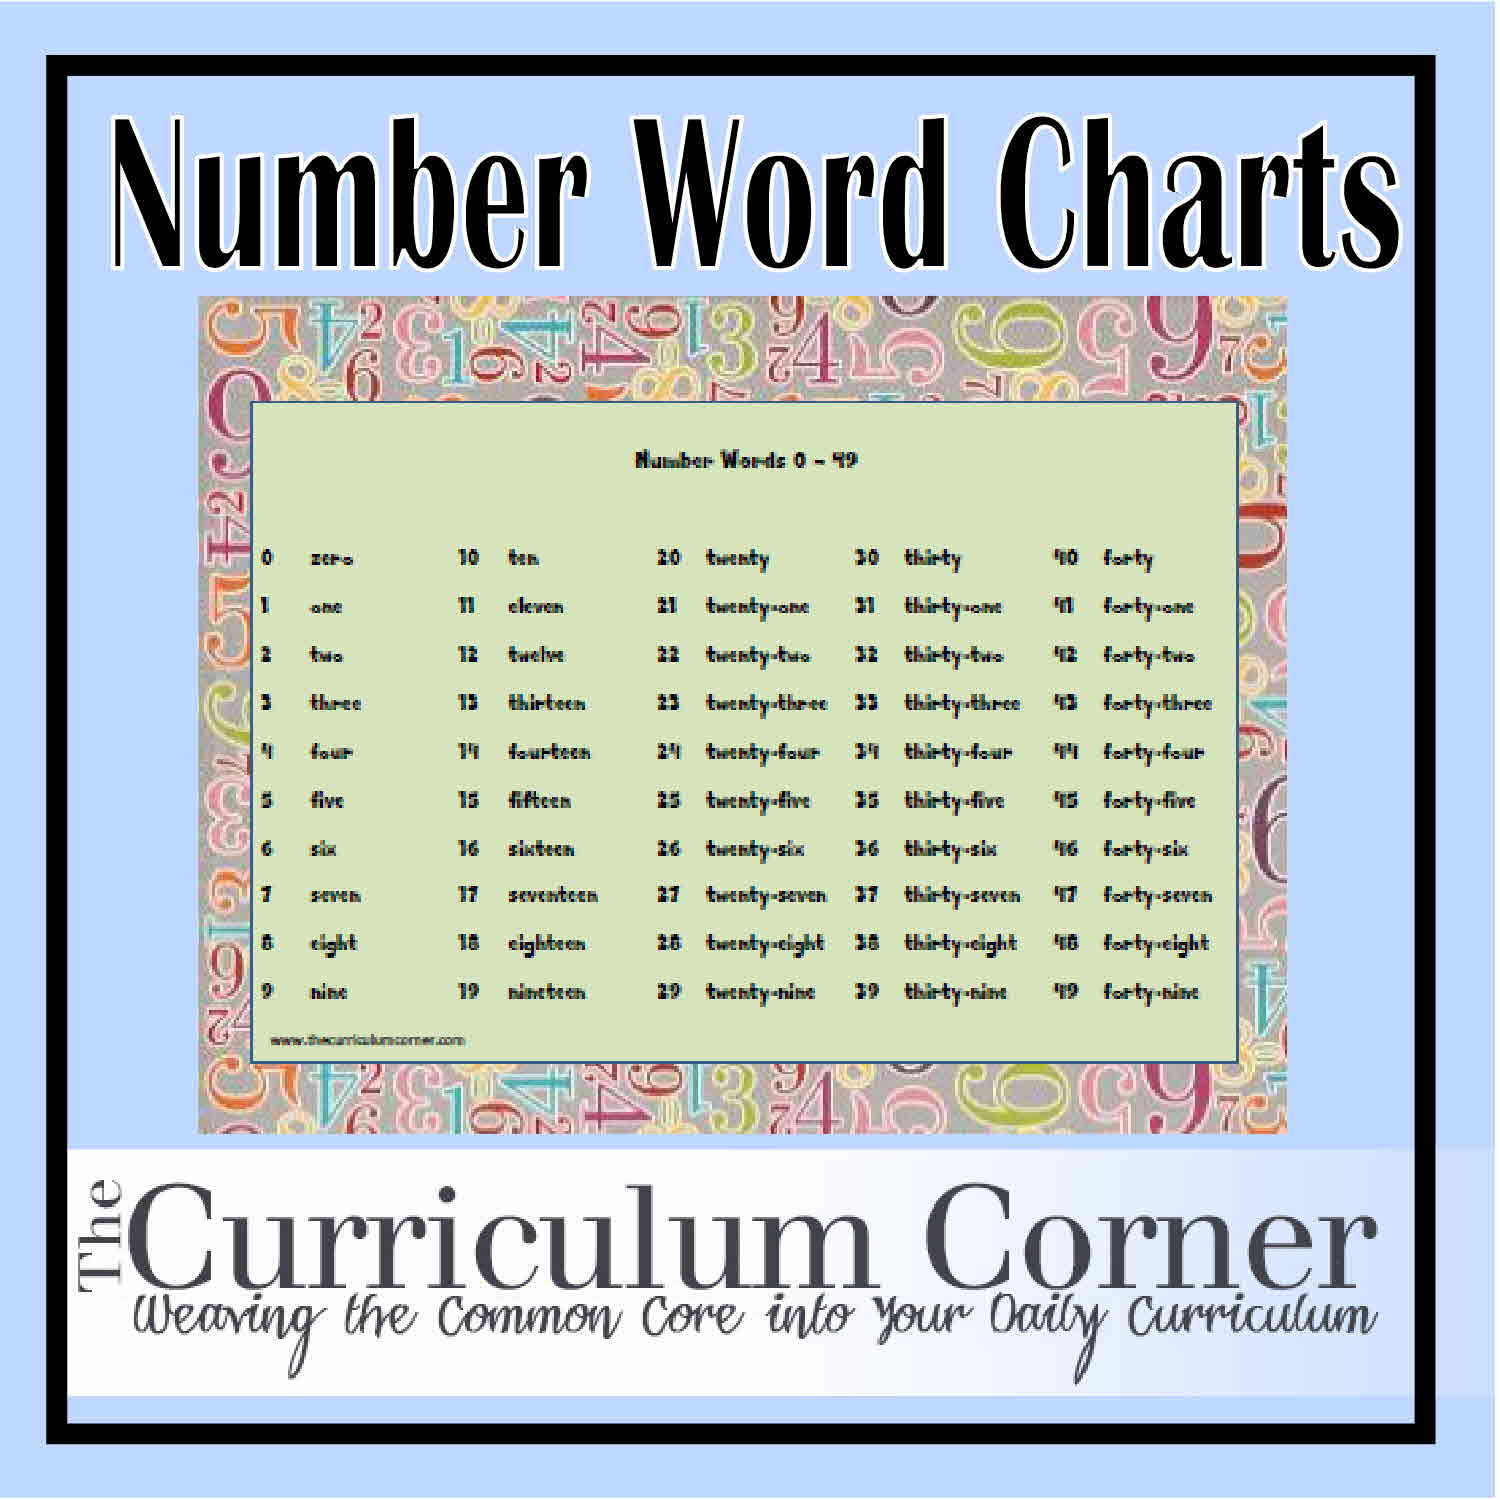 Number Words Charts